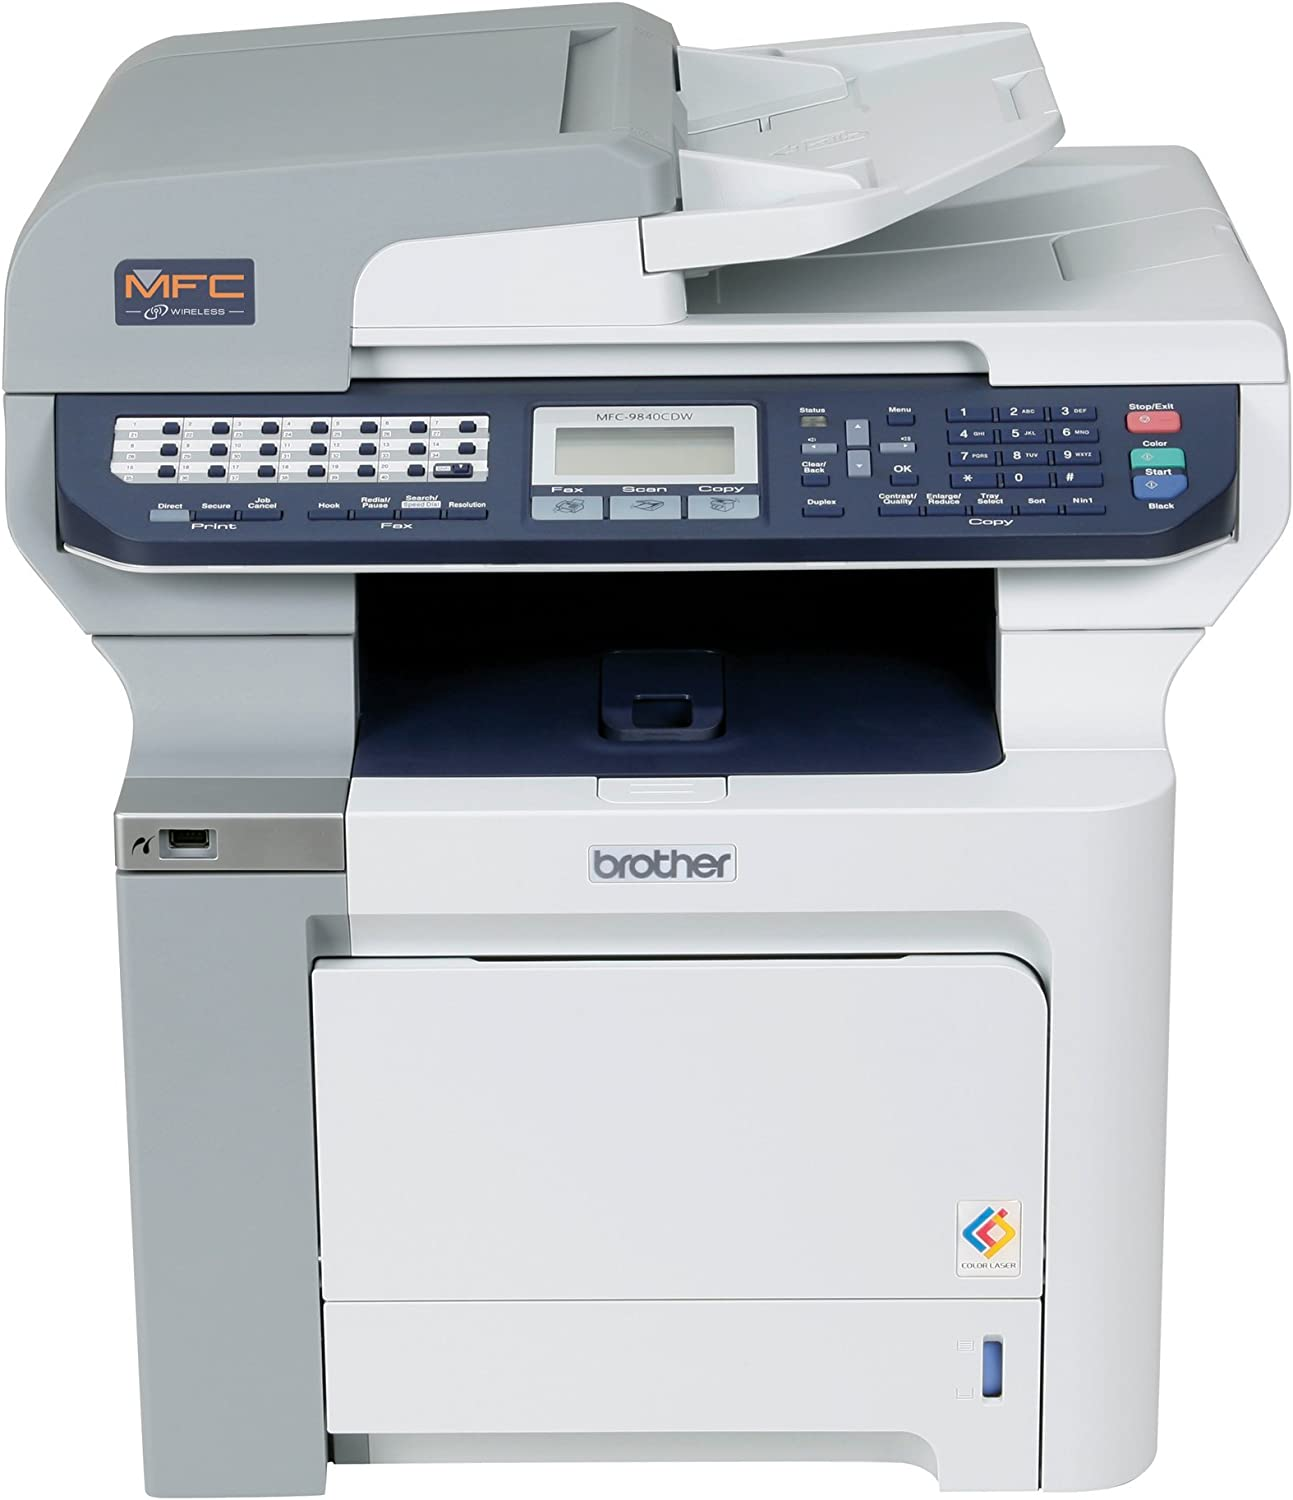 Amazon.com: Brother MFC-9840CDW Laser Multifunción Center ...